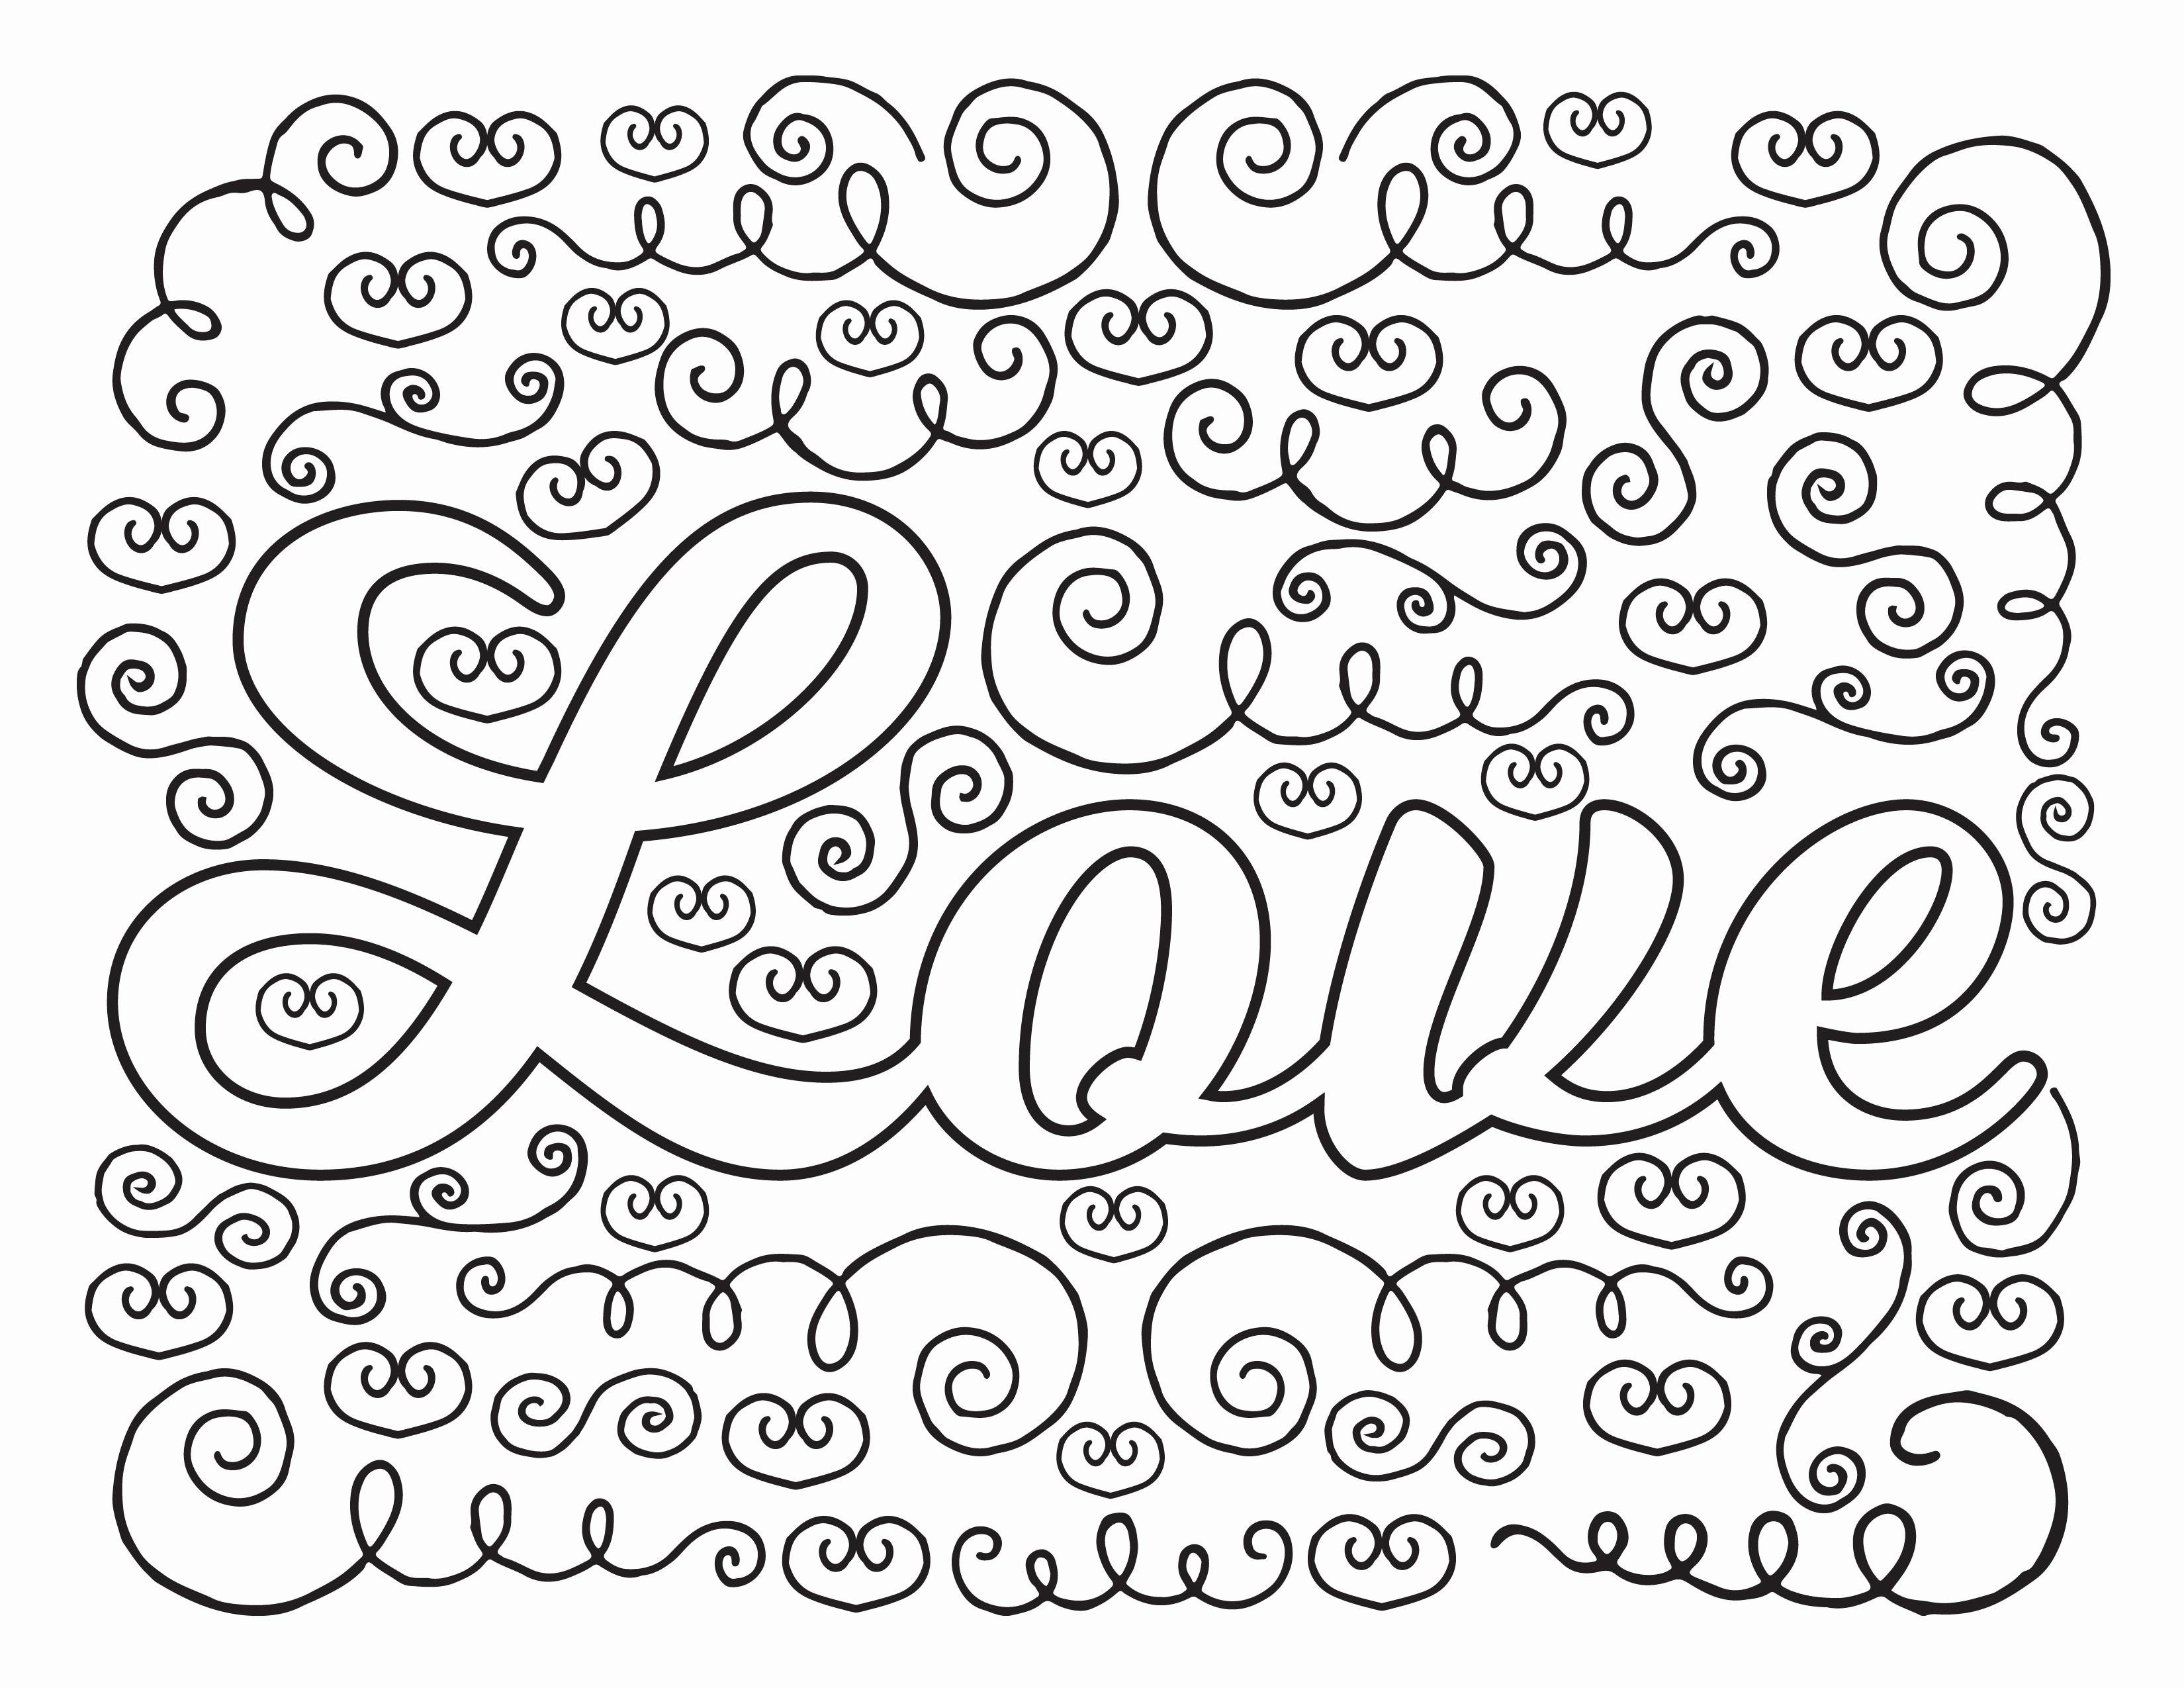 free printable wedding coloring pages Collection-Printable Bride and Groom Coloring Pages Free Printable Kids Coloring Pages Beautiful Crayola Pages 0d 4-e